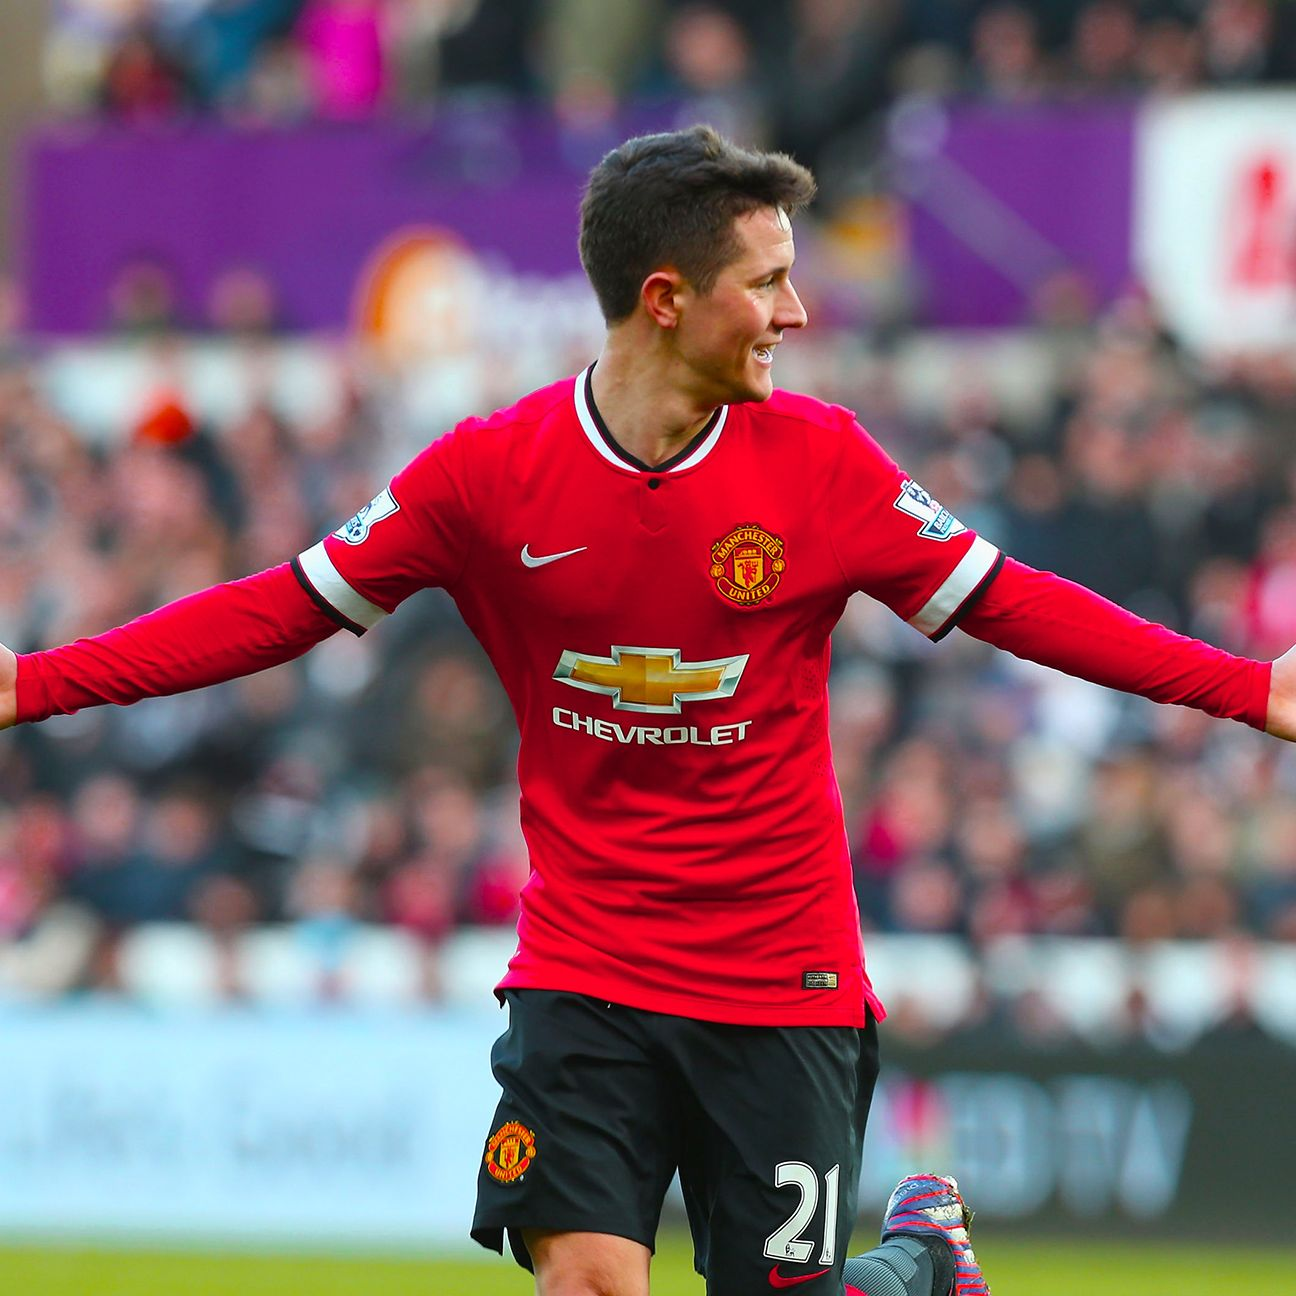 Midfielder Ander Herrera was one of the few bright spots for Manchester United.